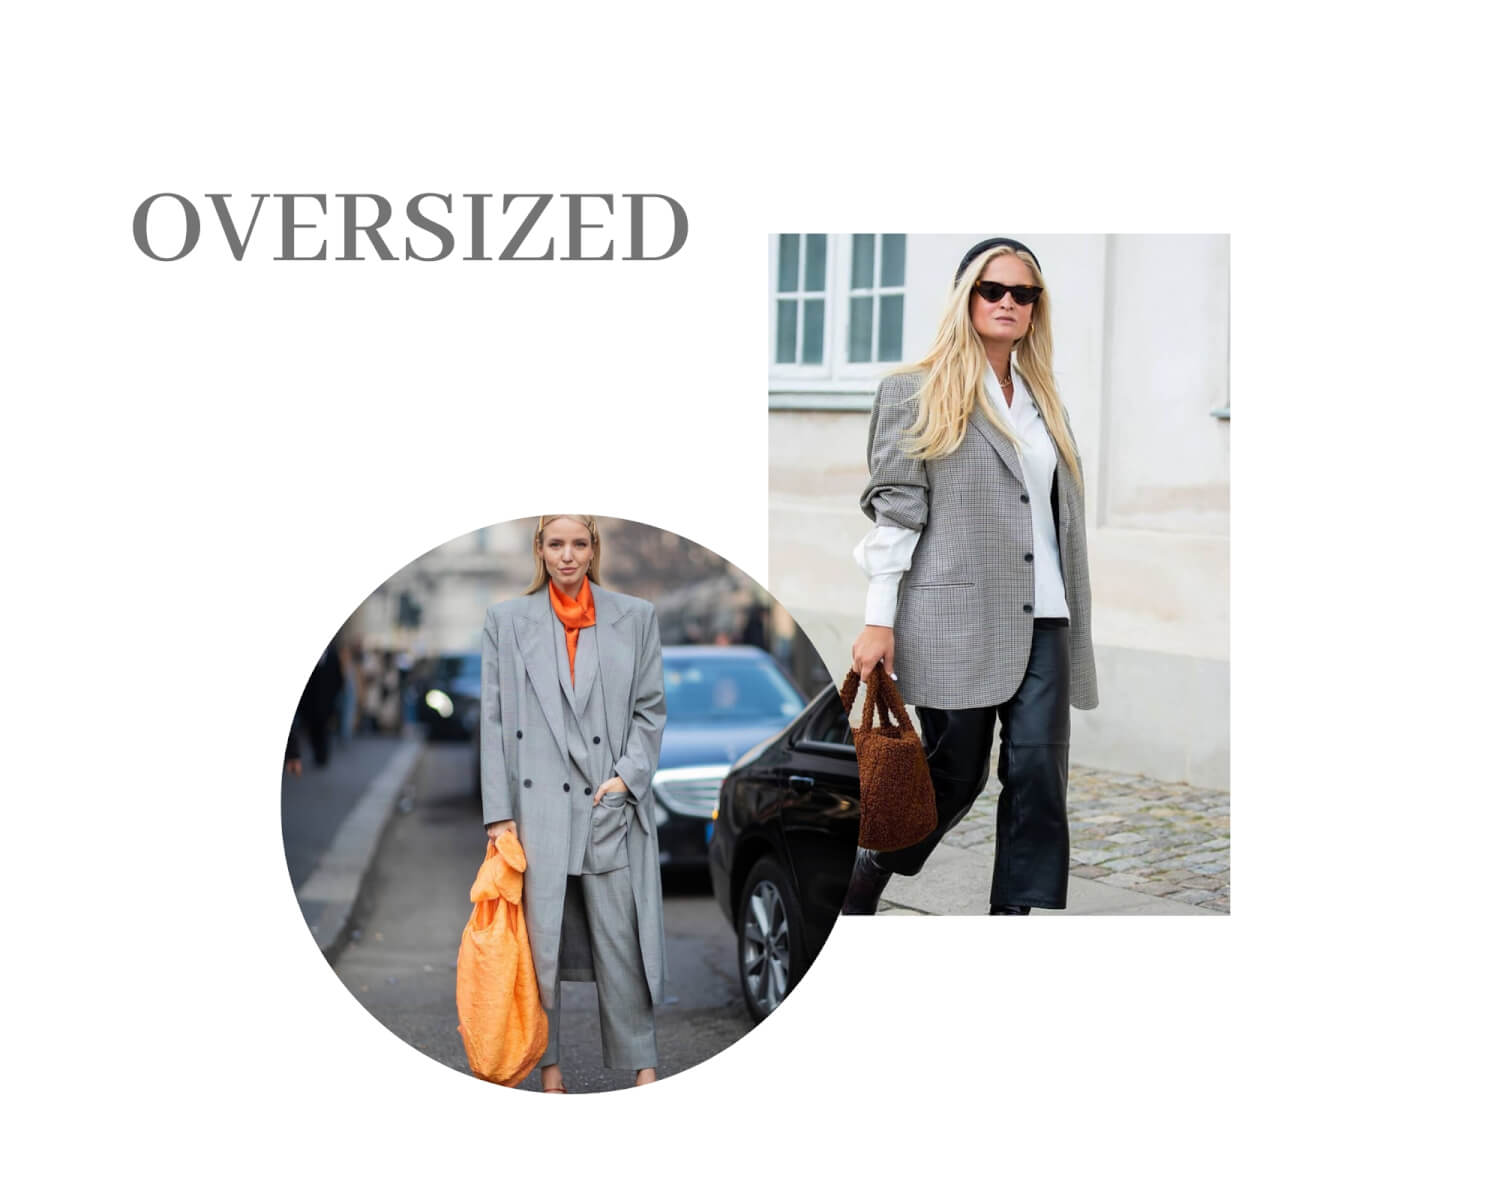 Oversized fashion trend